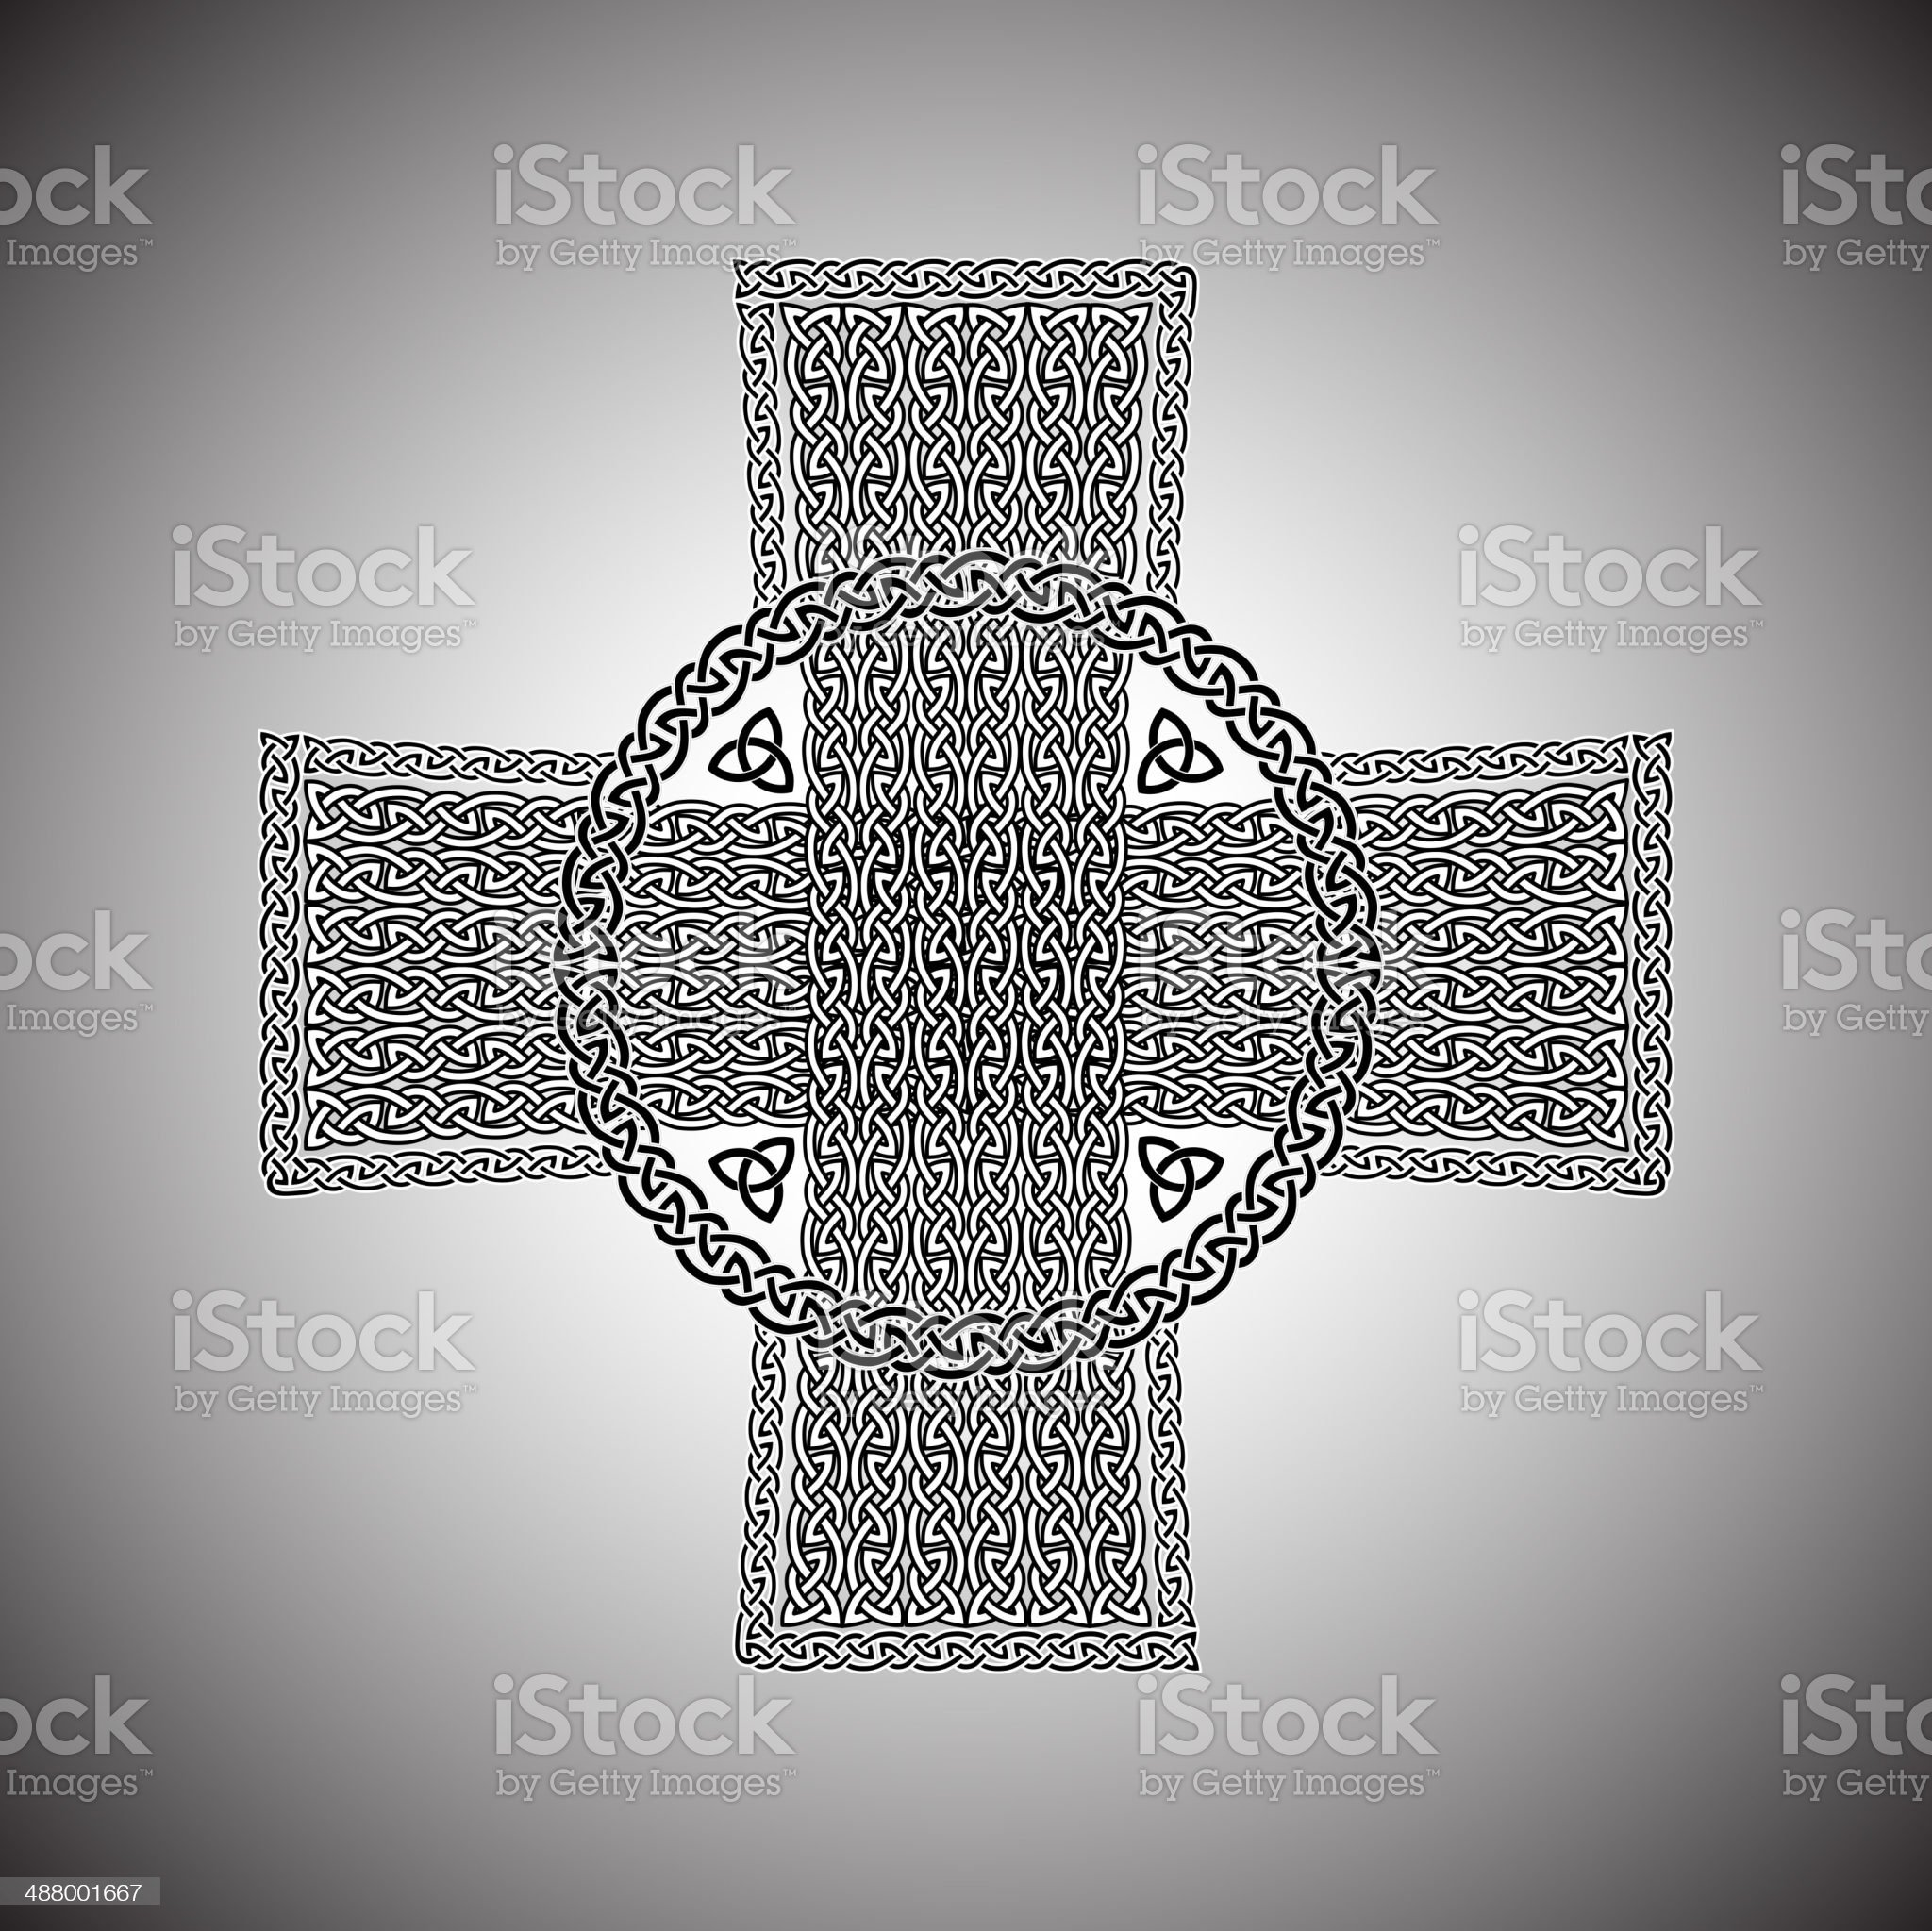 Celtic cross on a gray background vector royalty-free stock vector art